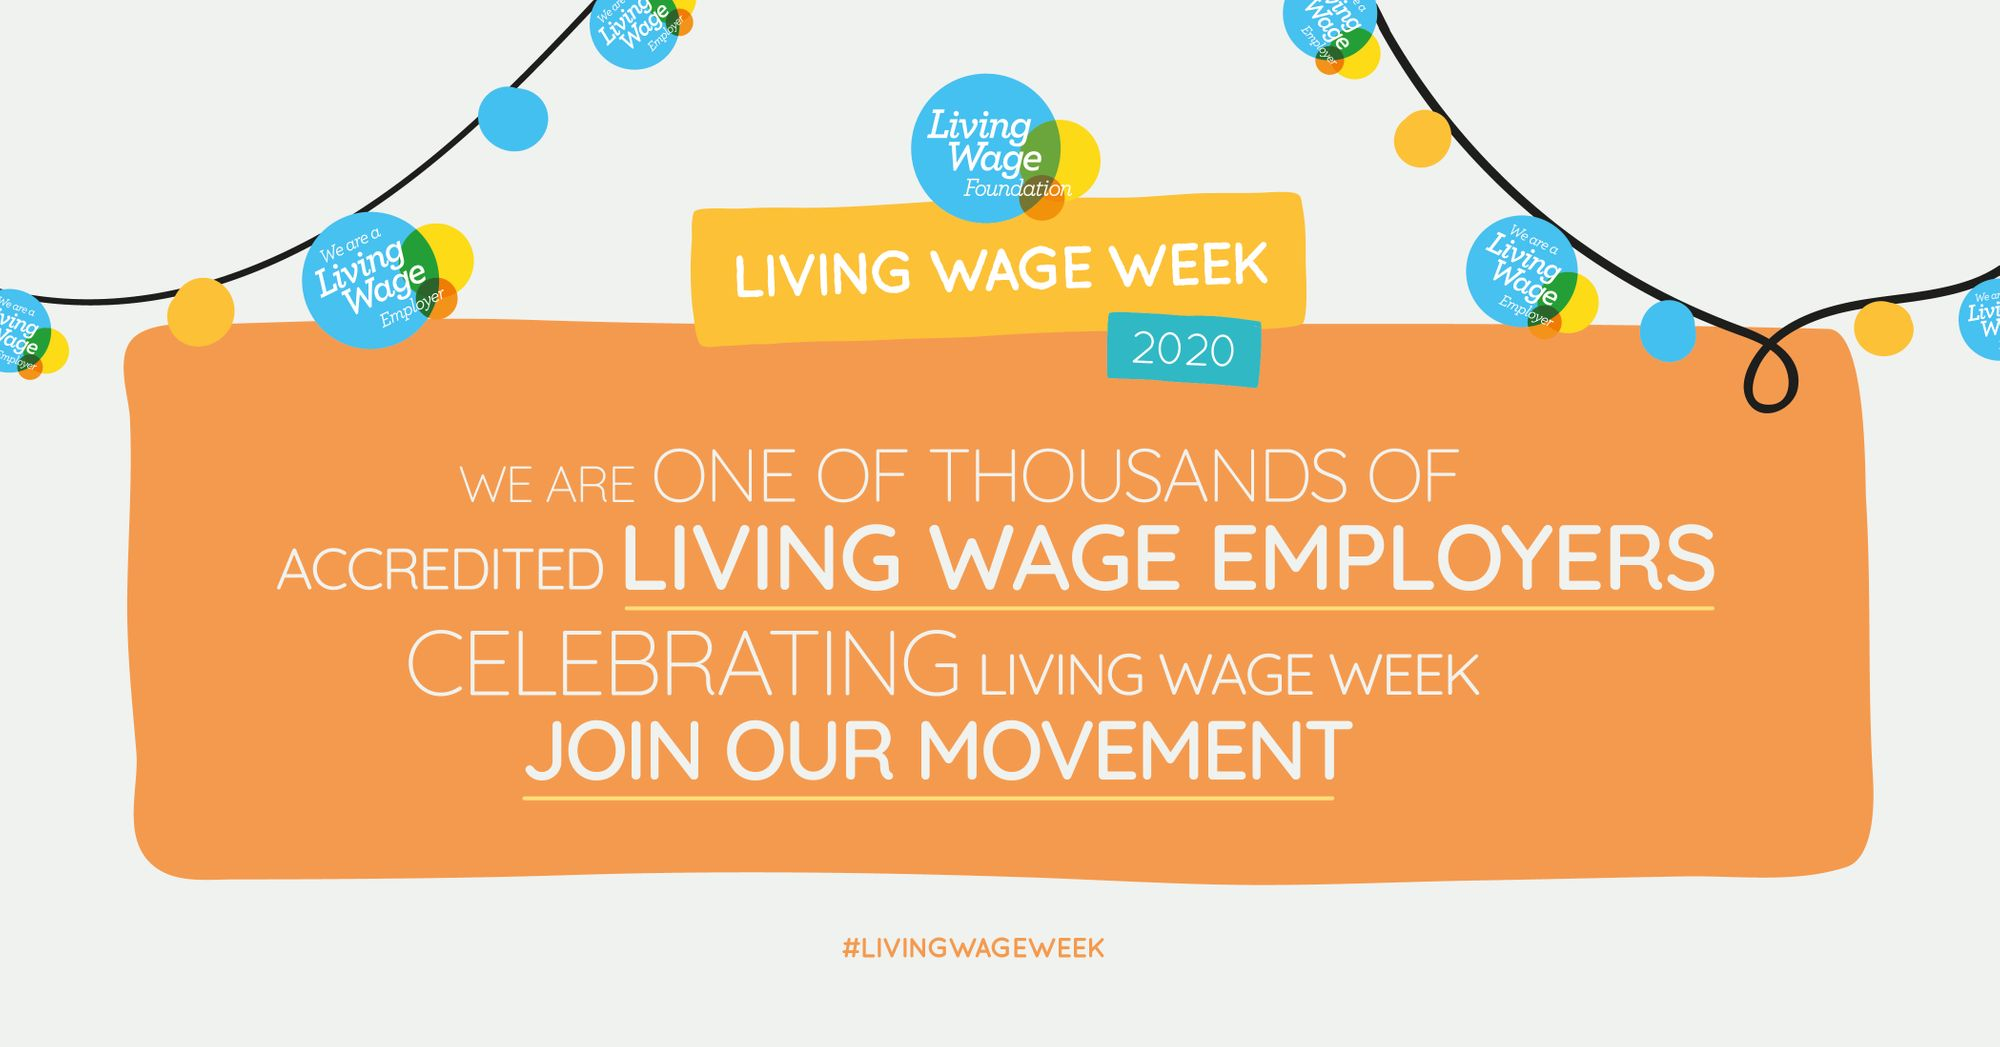 Urban Jungle is part of the living wage movement